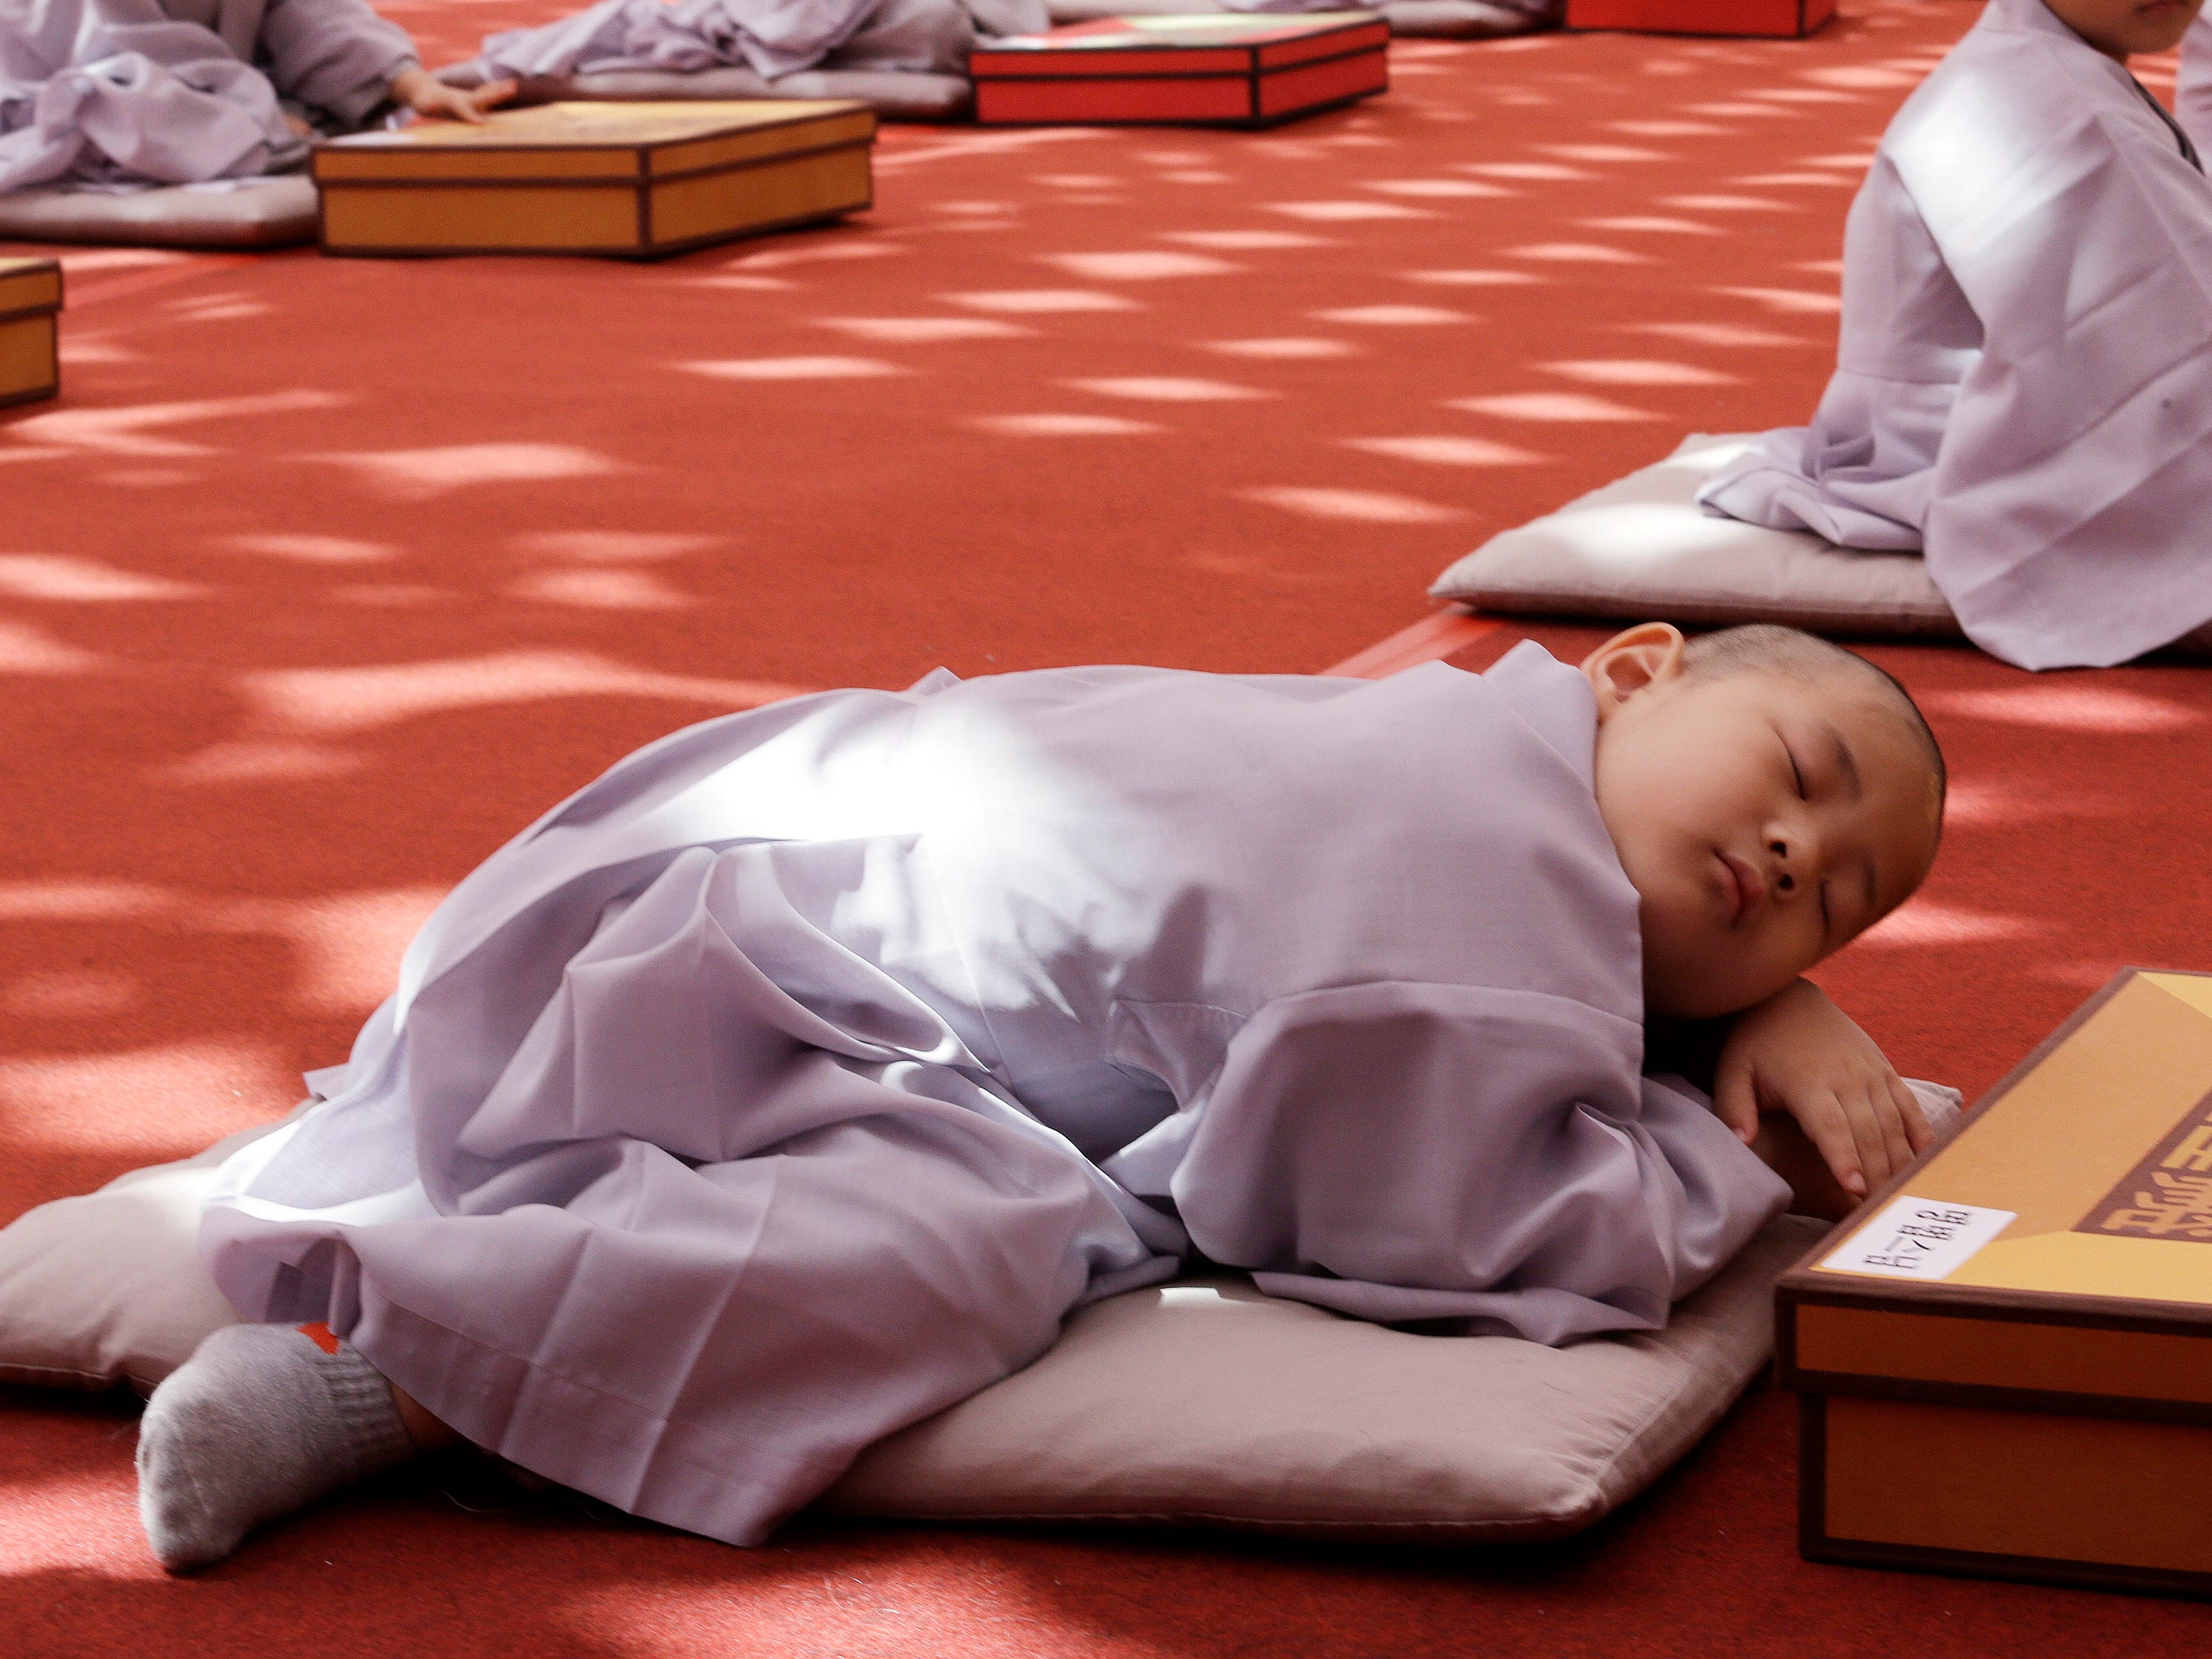 A boy whose Buddhist name is Myung Bub naps after having his head shaved during a service to celebrate Buddha's upcoming 2,563th birthday on May 12, at the Jogye Temple in Seoul, South Korea, Monday, April 22, 2019. Myung Bub is one of the 10 children who entered the temple to have an experience of monks' life for three weeks.